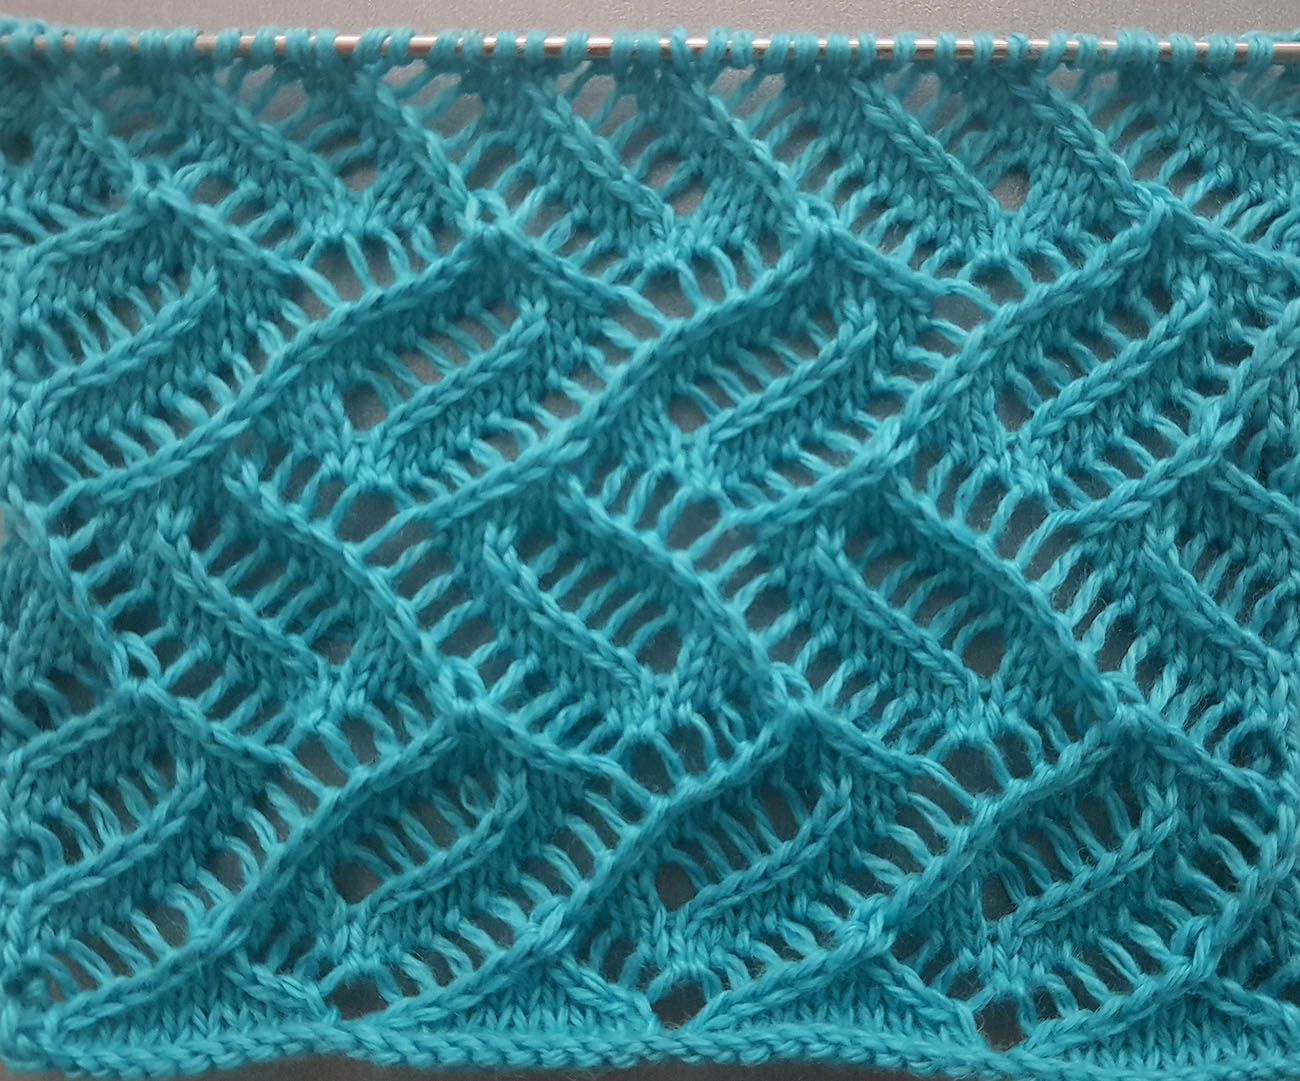 Lace Knit Stitch Pat